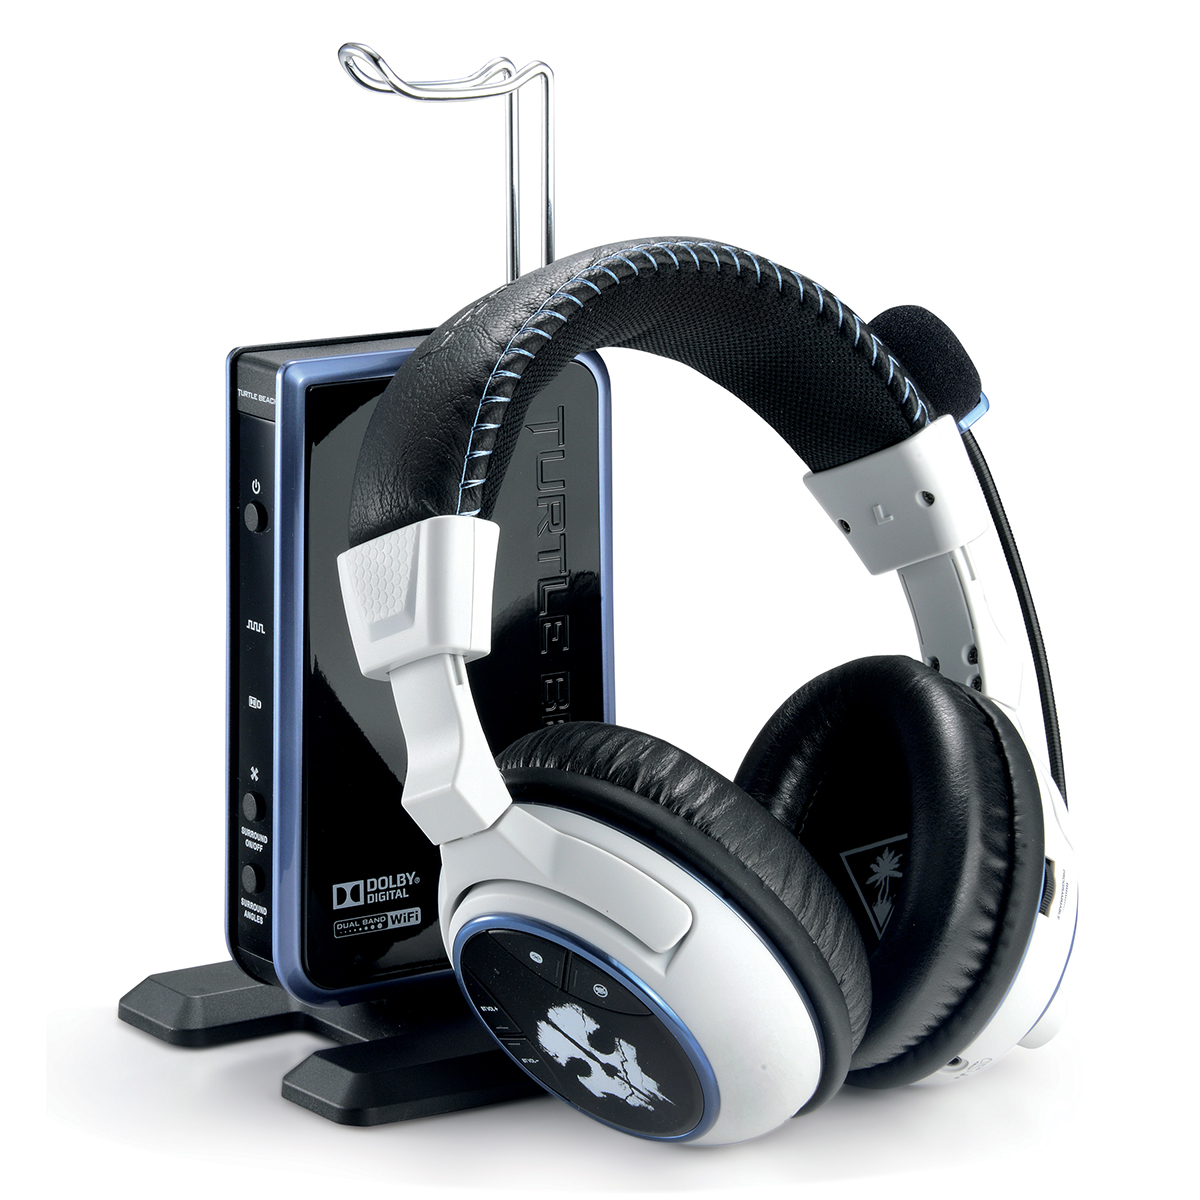 turtle beach pr sente les casques cod ghosts insert coin. Black Bedroom Furniture Sets. Home Design Ideas